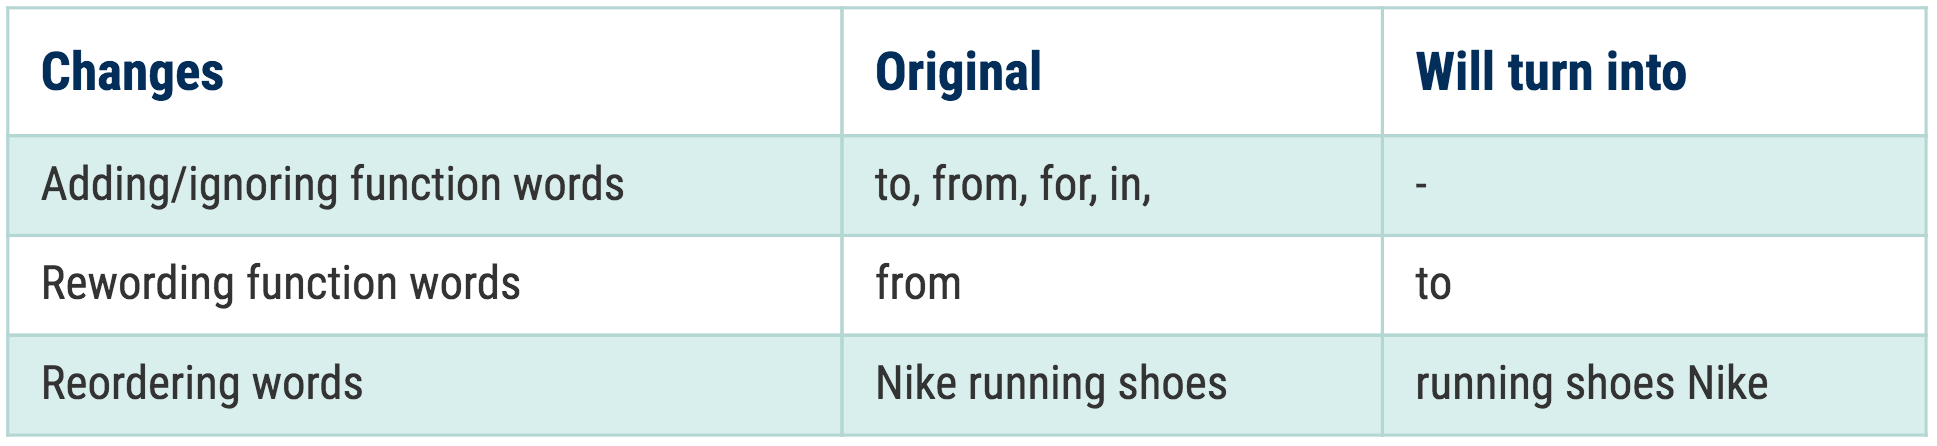 Rules for function words and reordering in the new exact match close variants